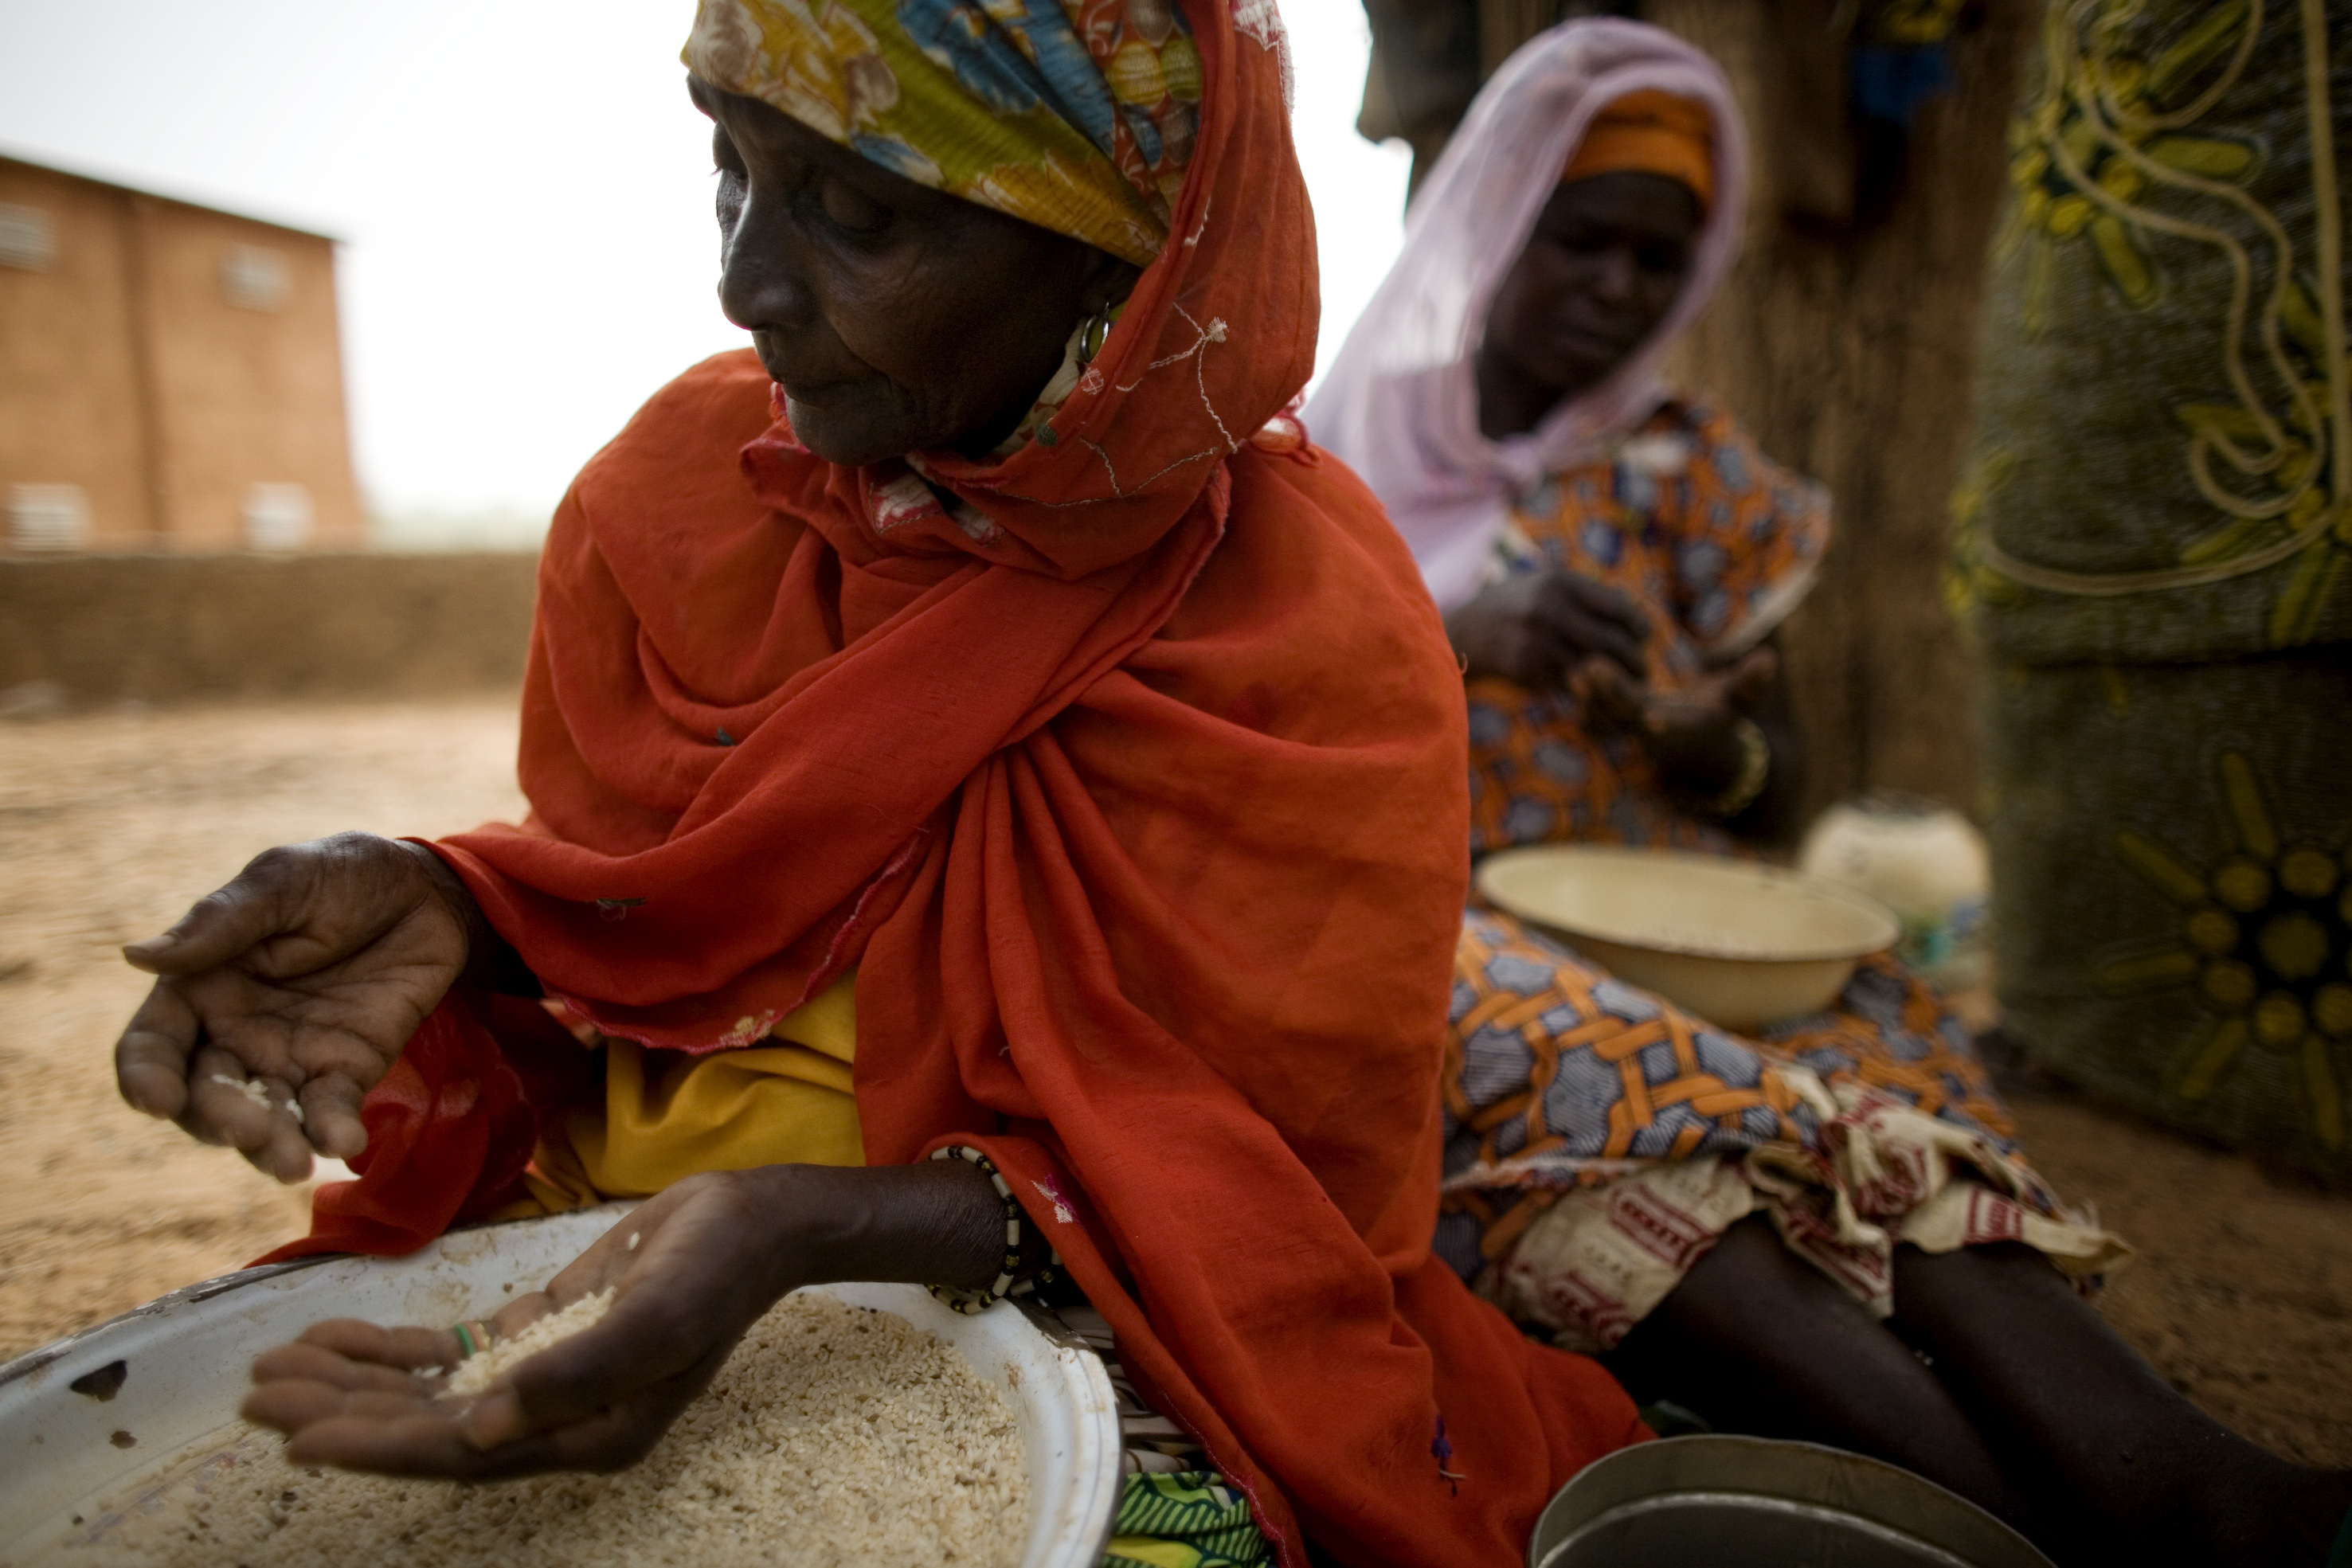 Zaina Bou Bondaire and Fatima Souley pick out rocks and dirt from rice found on the ground outside of the OPVN, Office des Produits Vivriers du Niger, food storage warehouse in Niamey, Niger